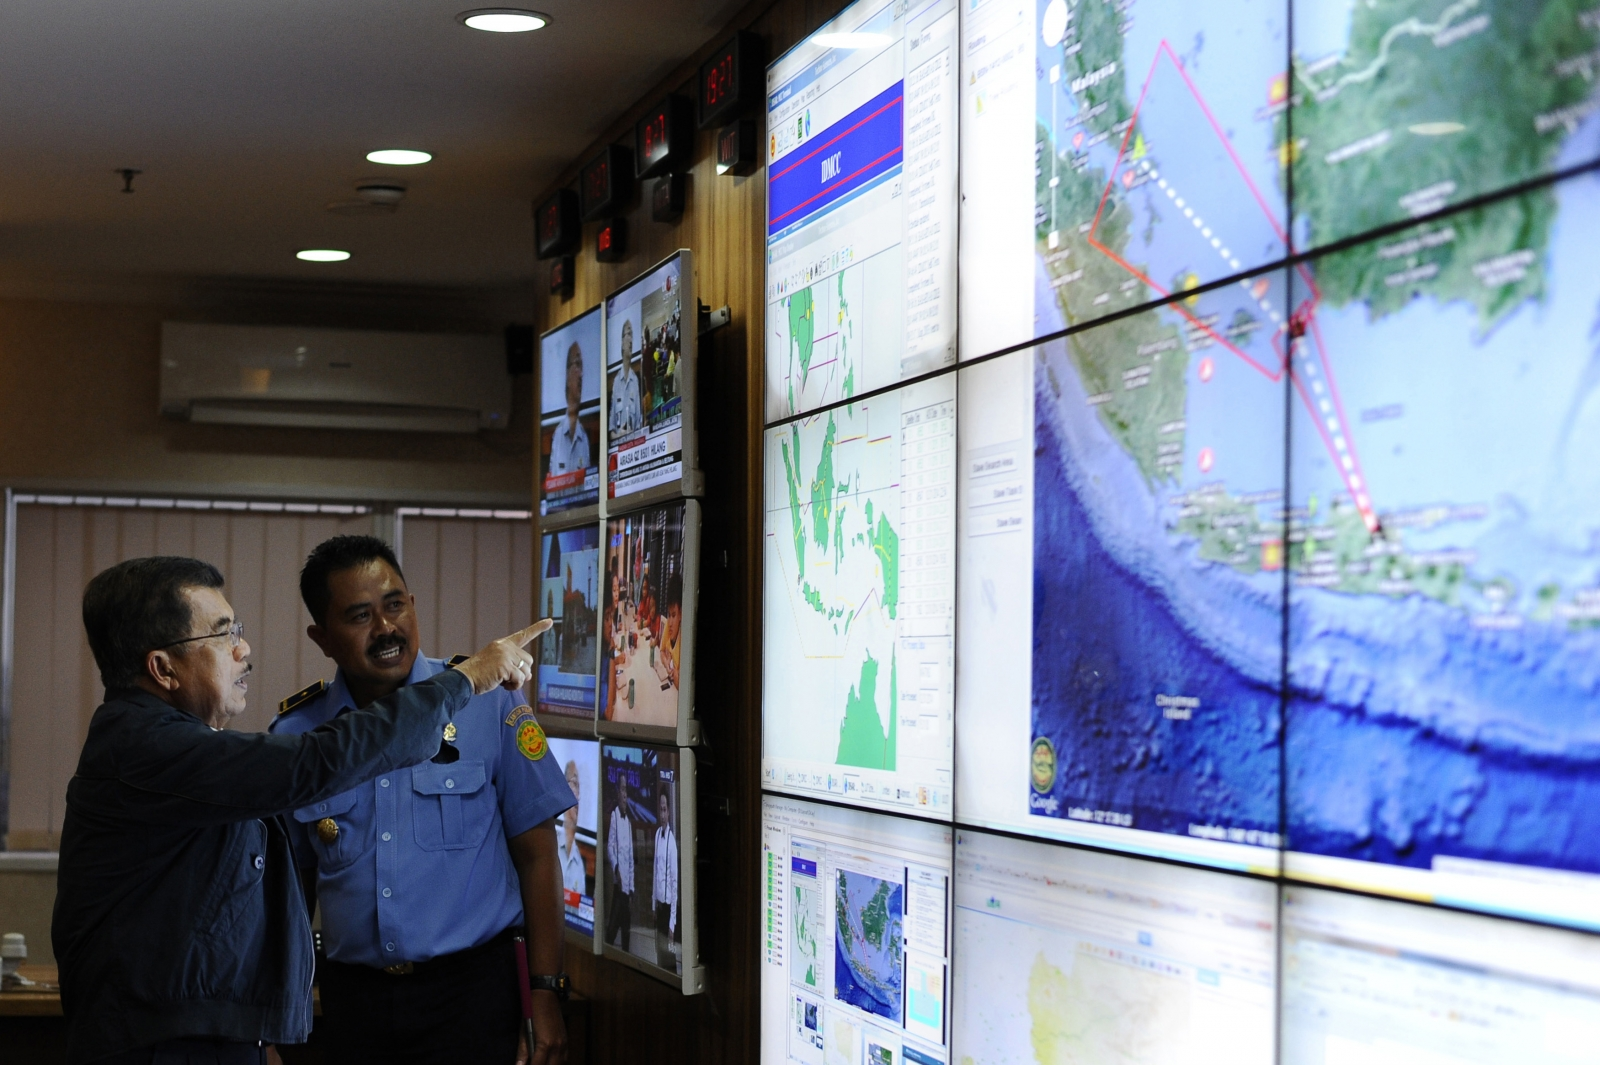 The search for AirAsia Flight QZ8501 continues, with many theories as to what has caused its disappearance